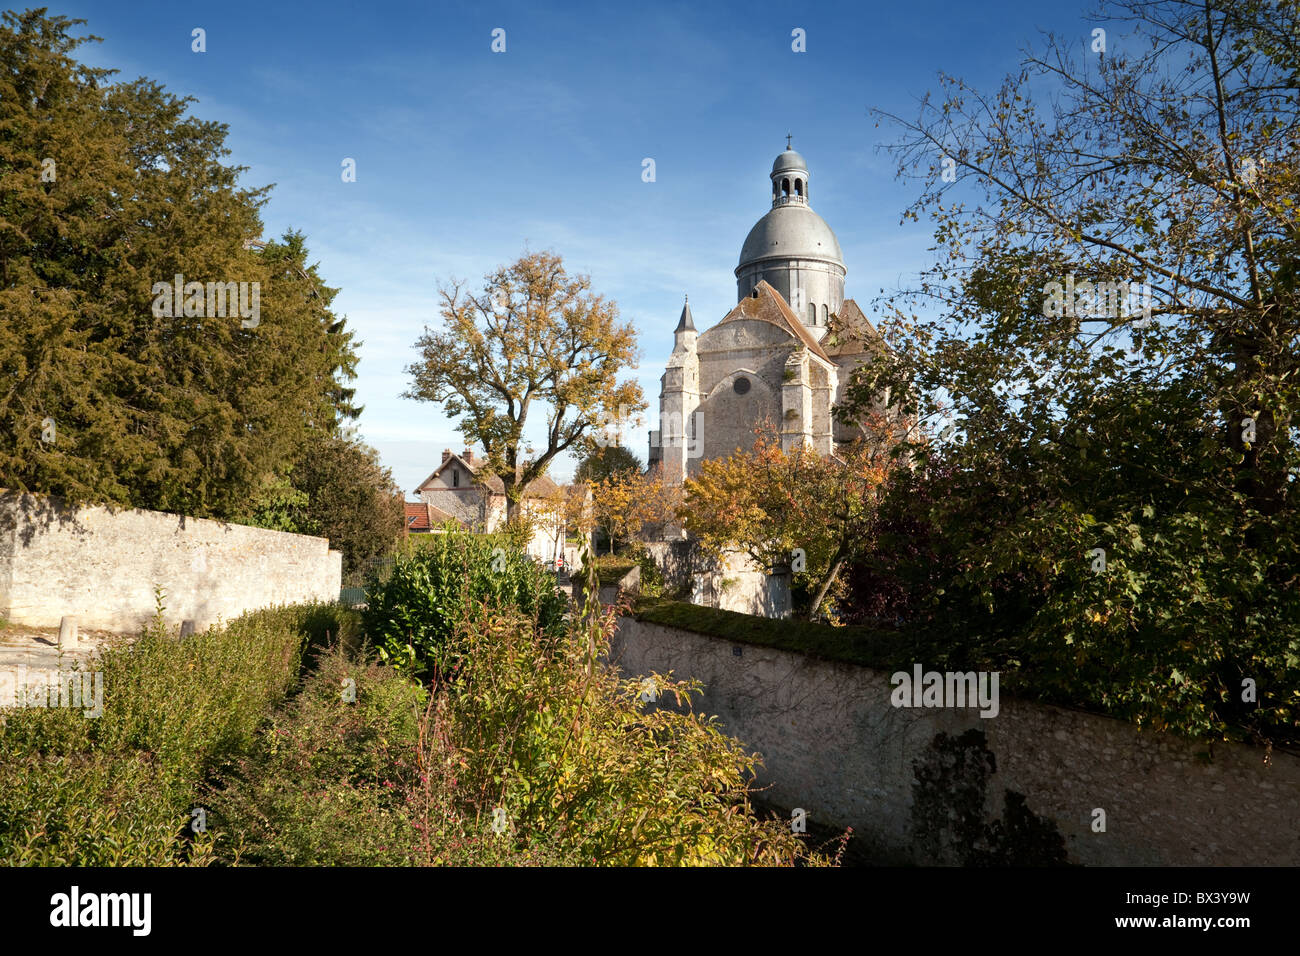 The Saint Quiriace Collegiate Church in the medieval town of Provins, Seine et Marne, Ile de France France - Stock Image